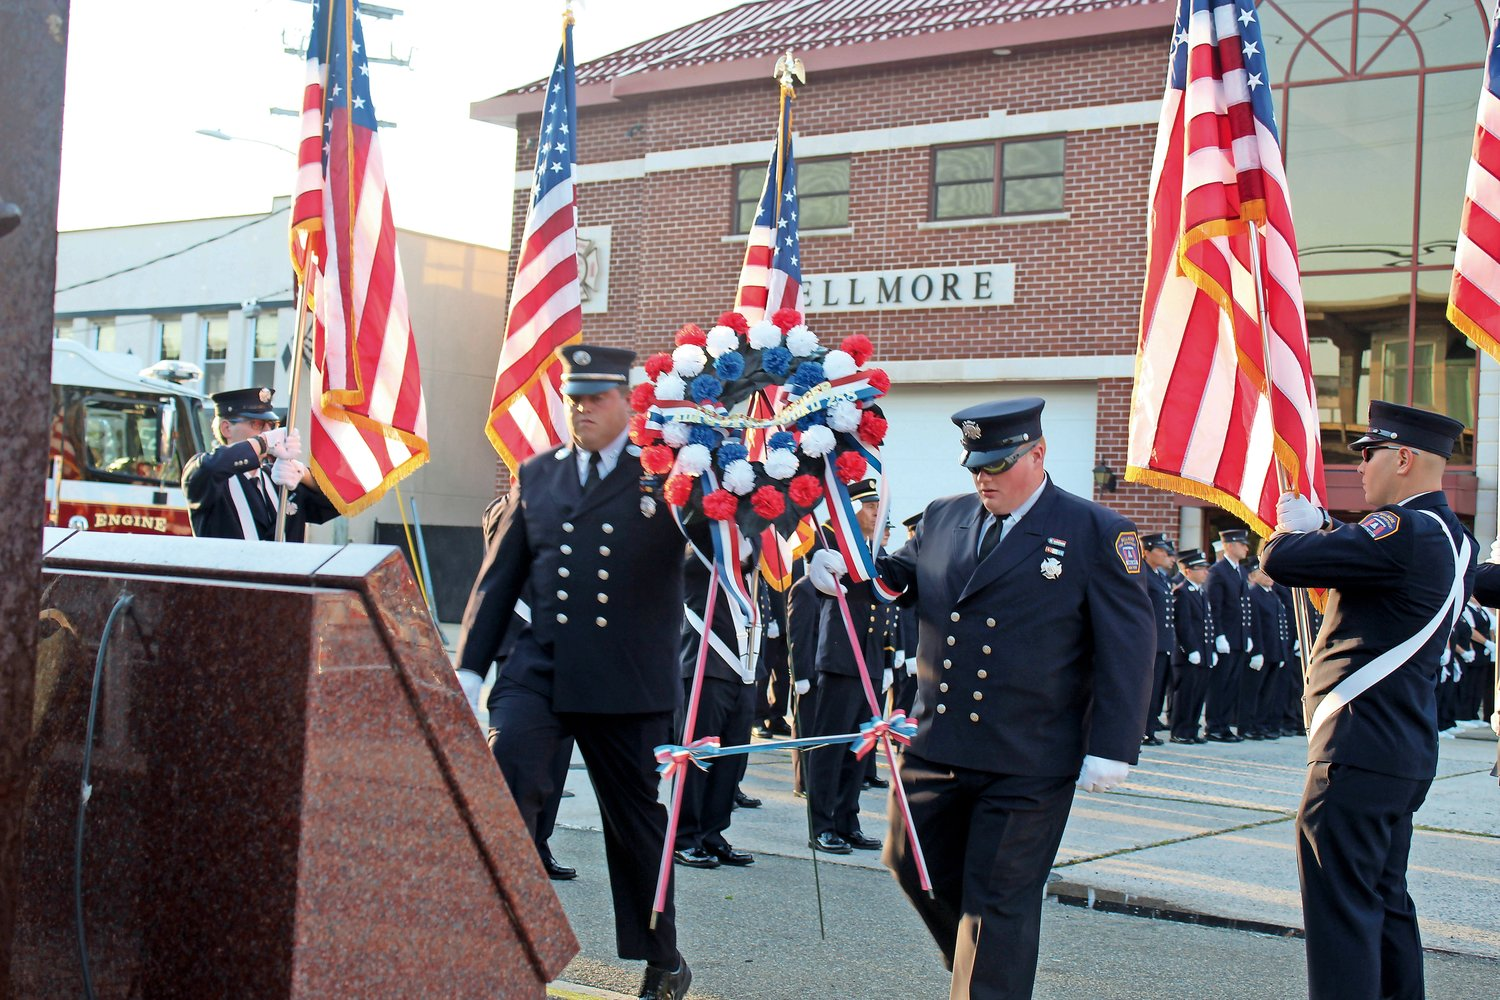 A pair of firefighters carried a memorial wreath bearing Adam Rand's name. Rand was a volunteer with the Bellmore Fire Department and a New York City firefighter. He died in the line of duty during the Sept. 11 terrorist attacks.